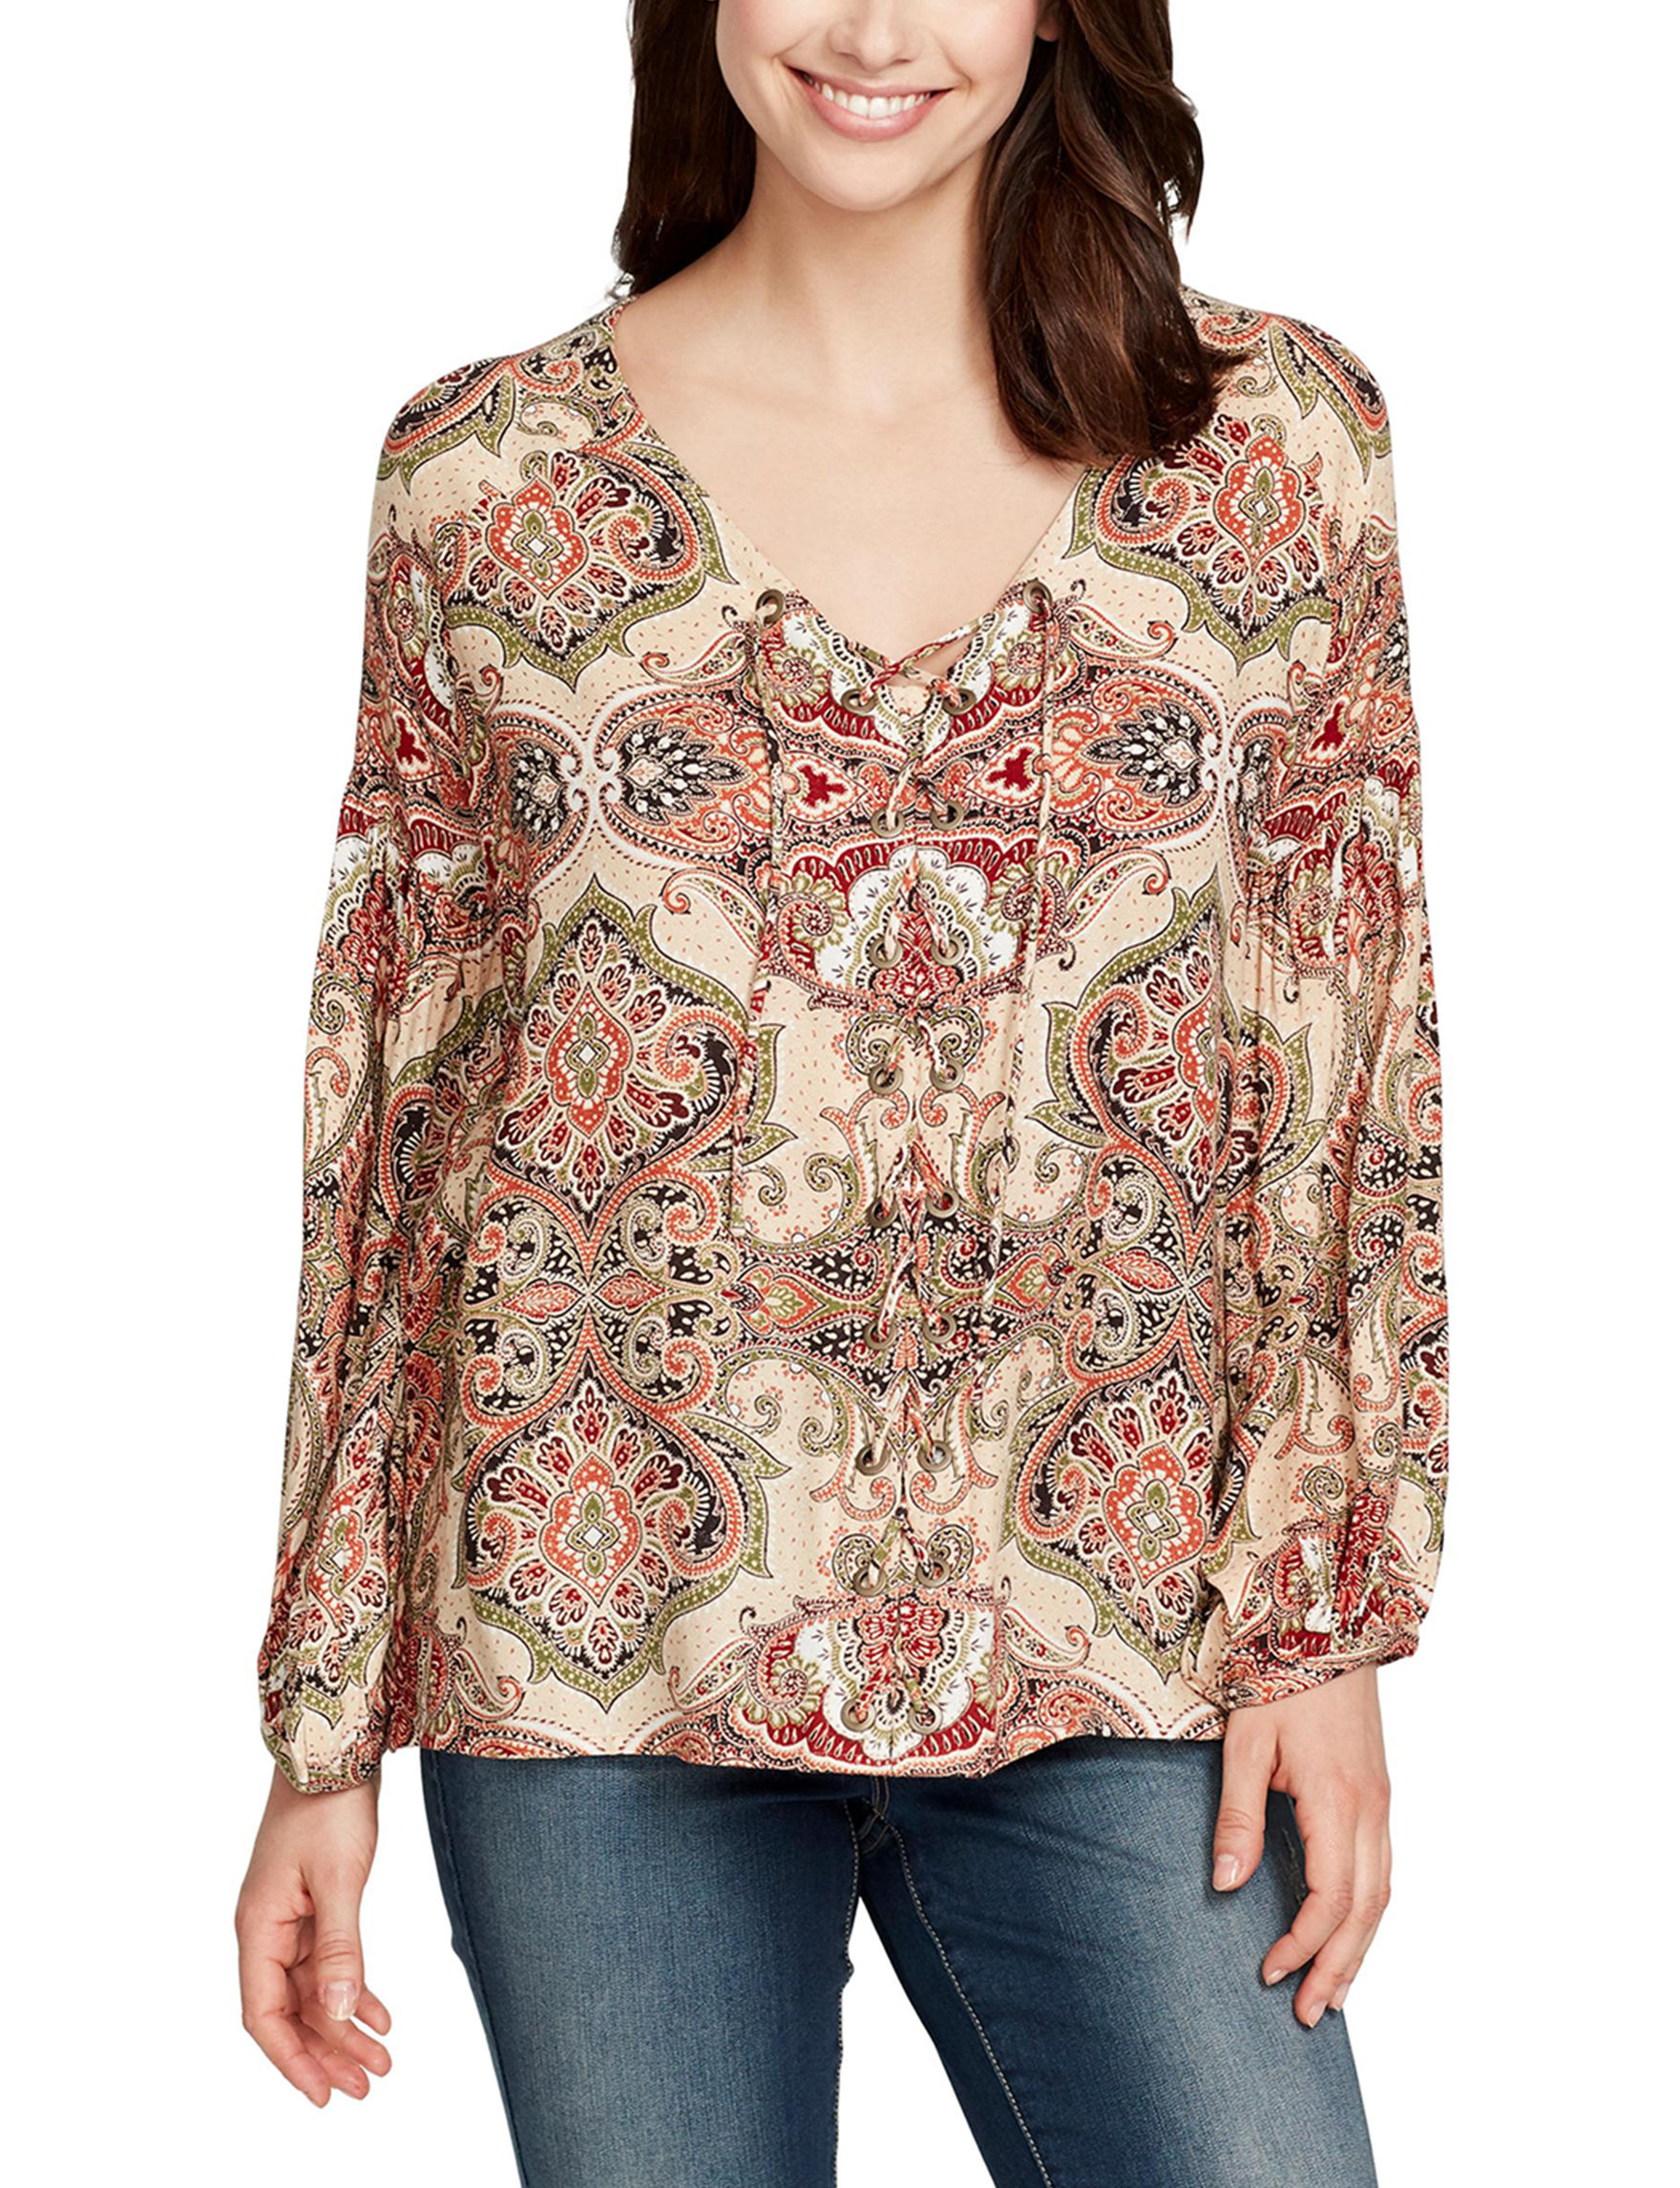 Nine West Jeans Brown Multi Shirts & Blouses